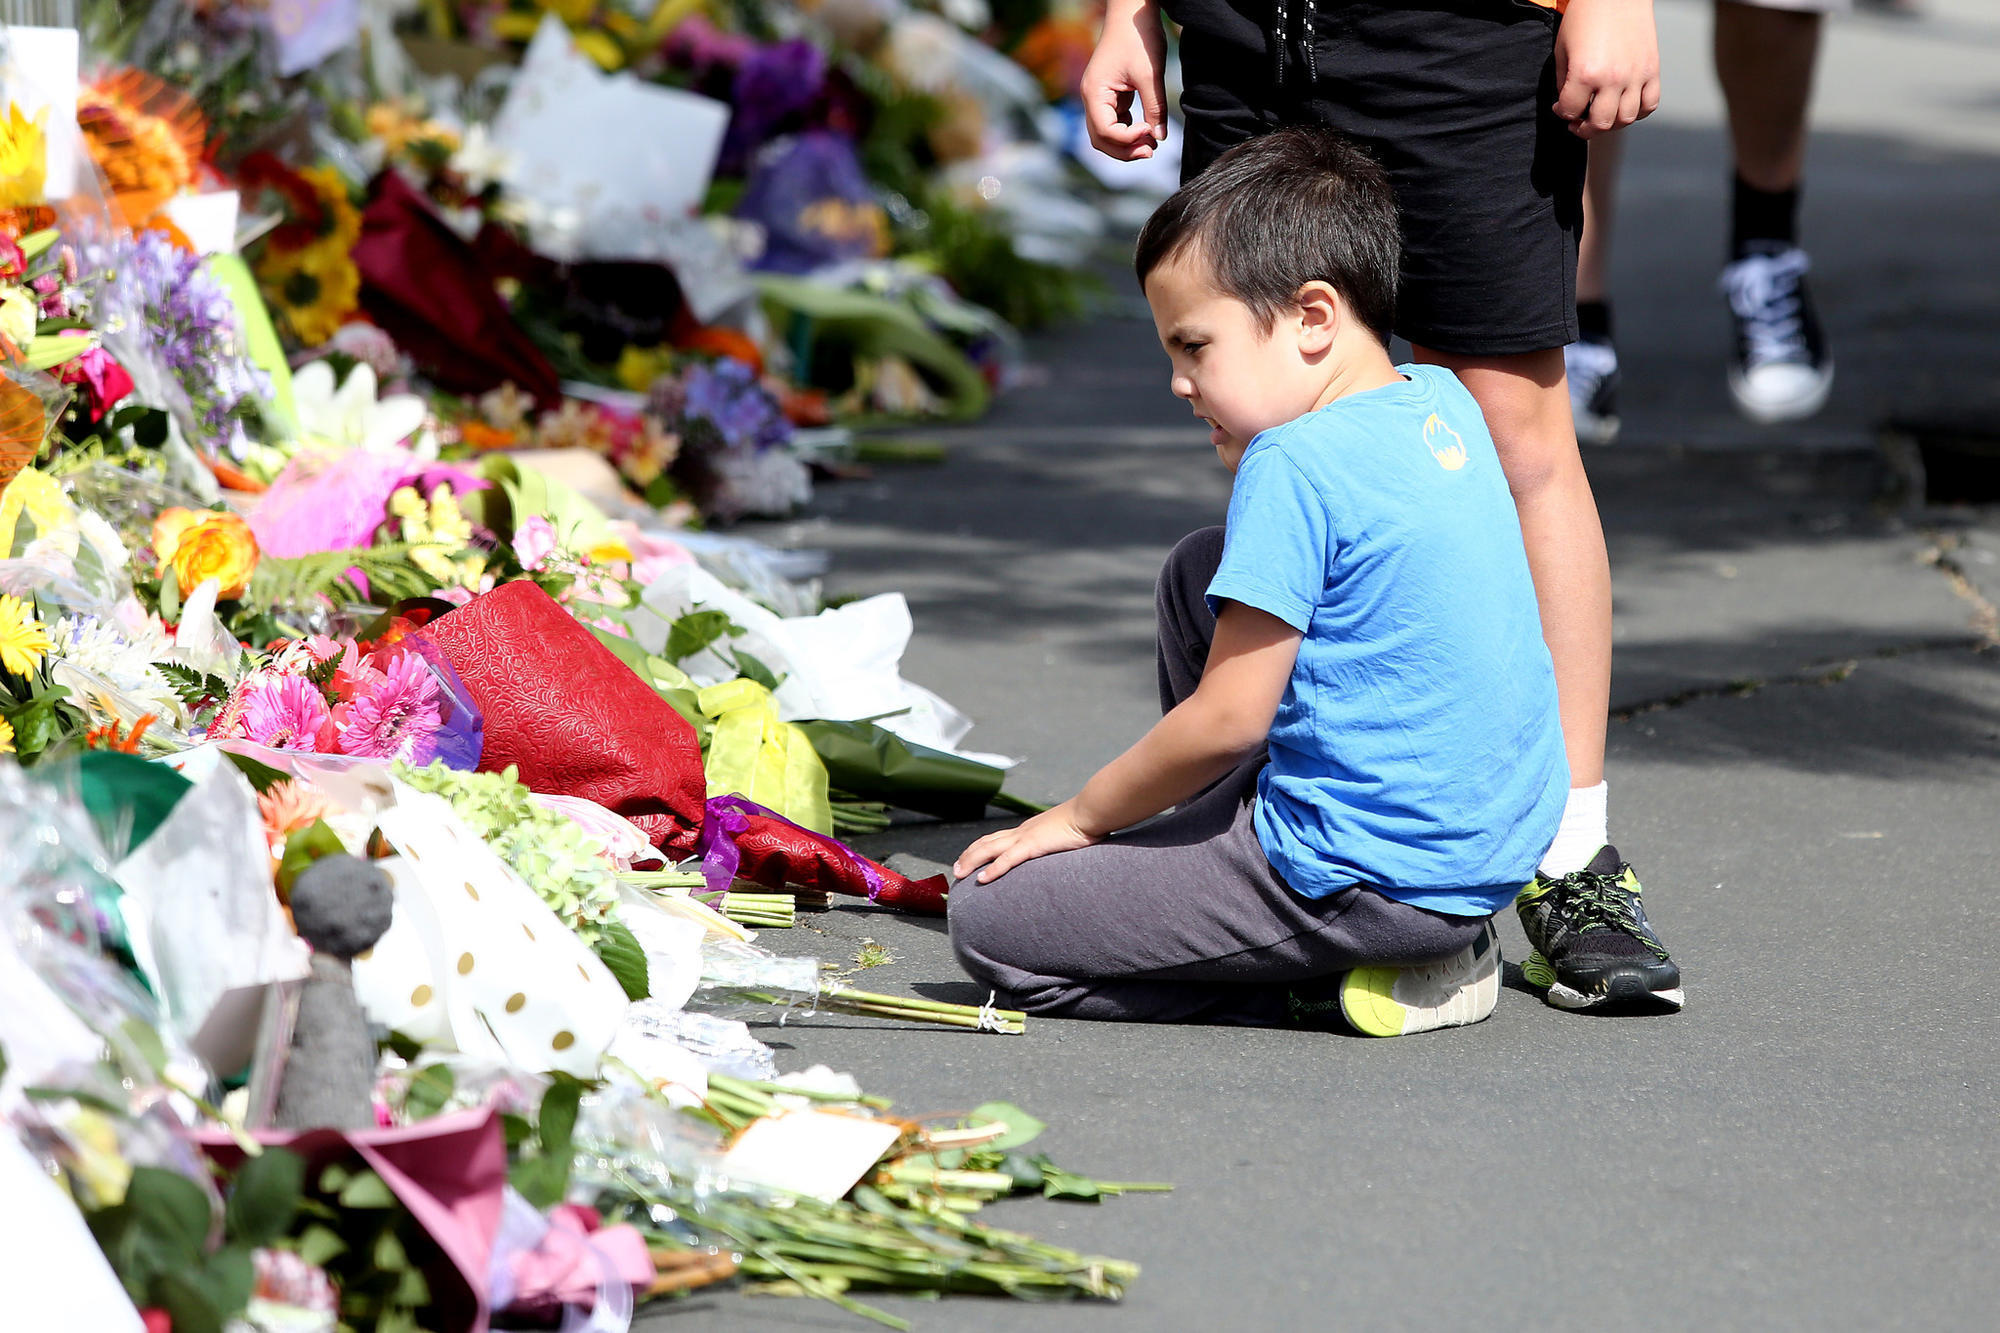 Terrorist attacks on New Zealand mosques kill 49; suspect charged with murder